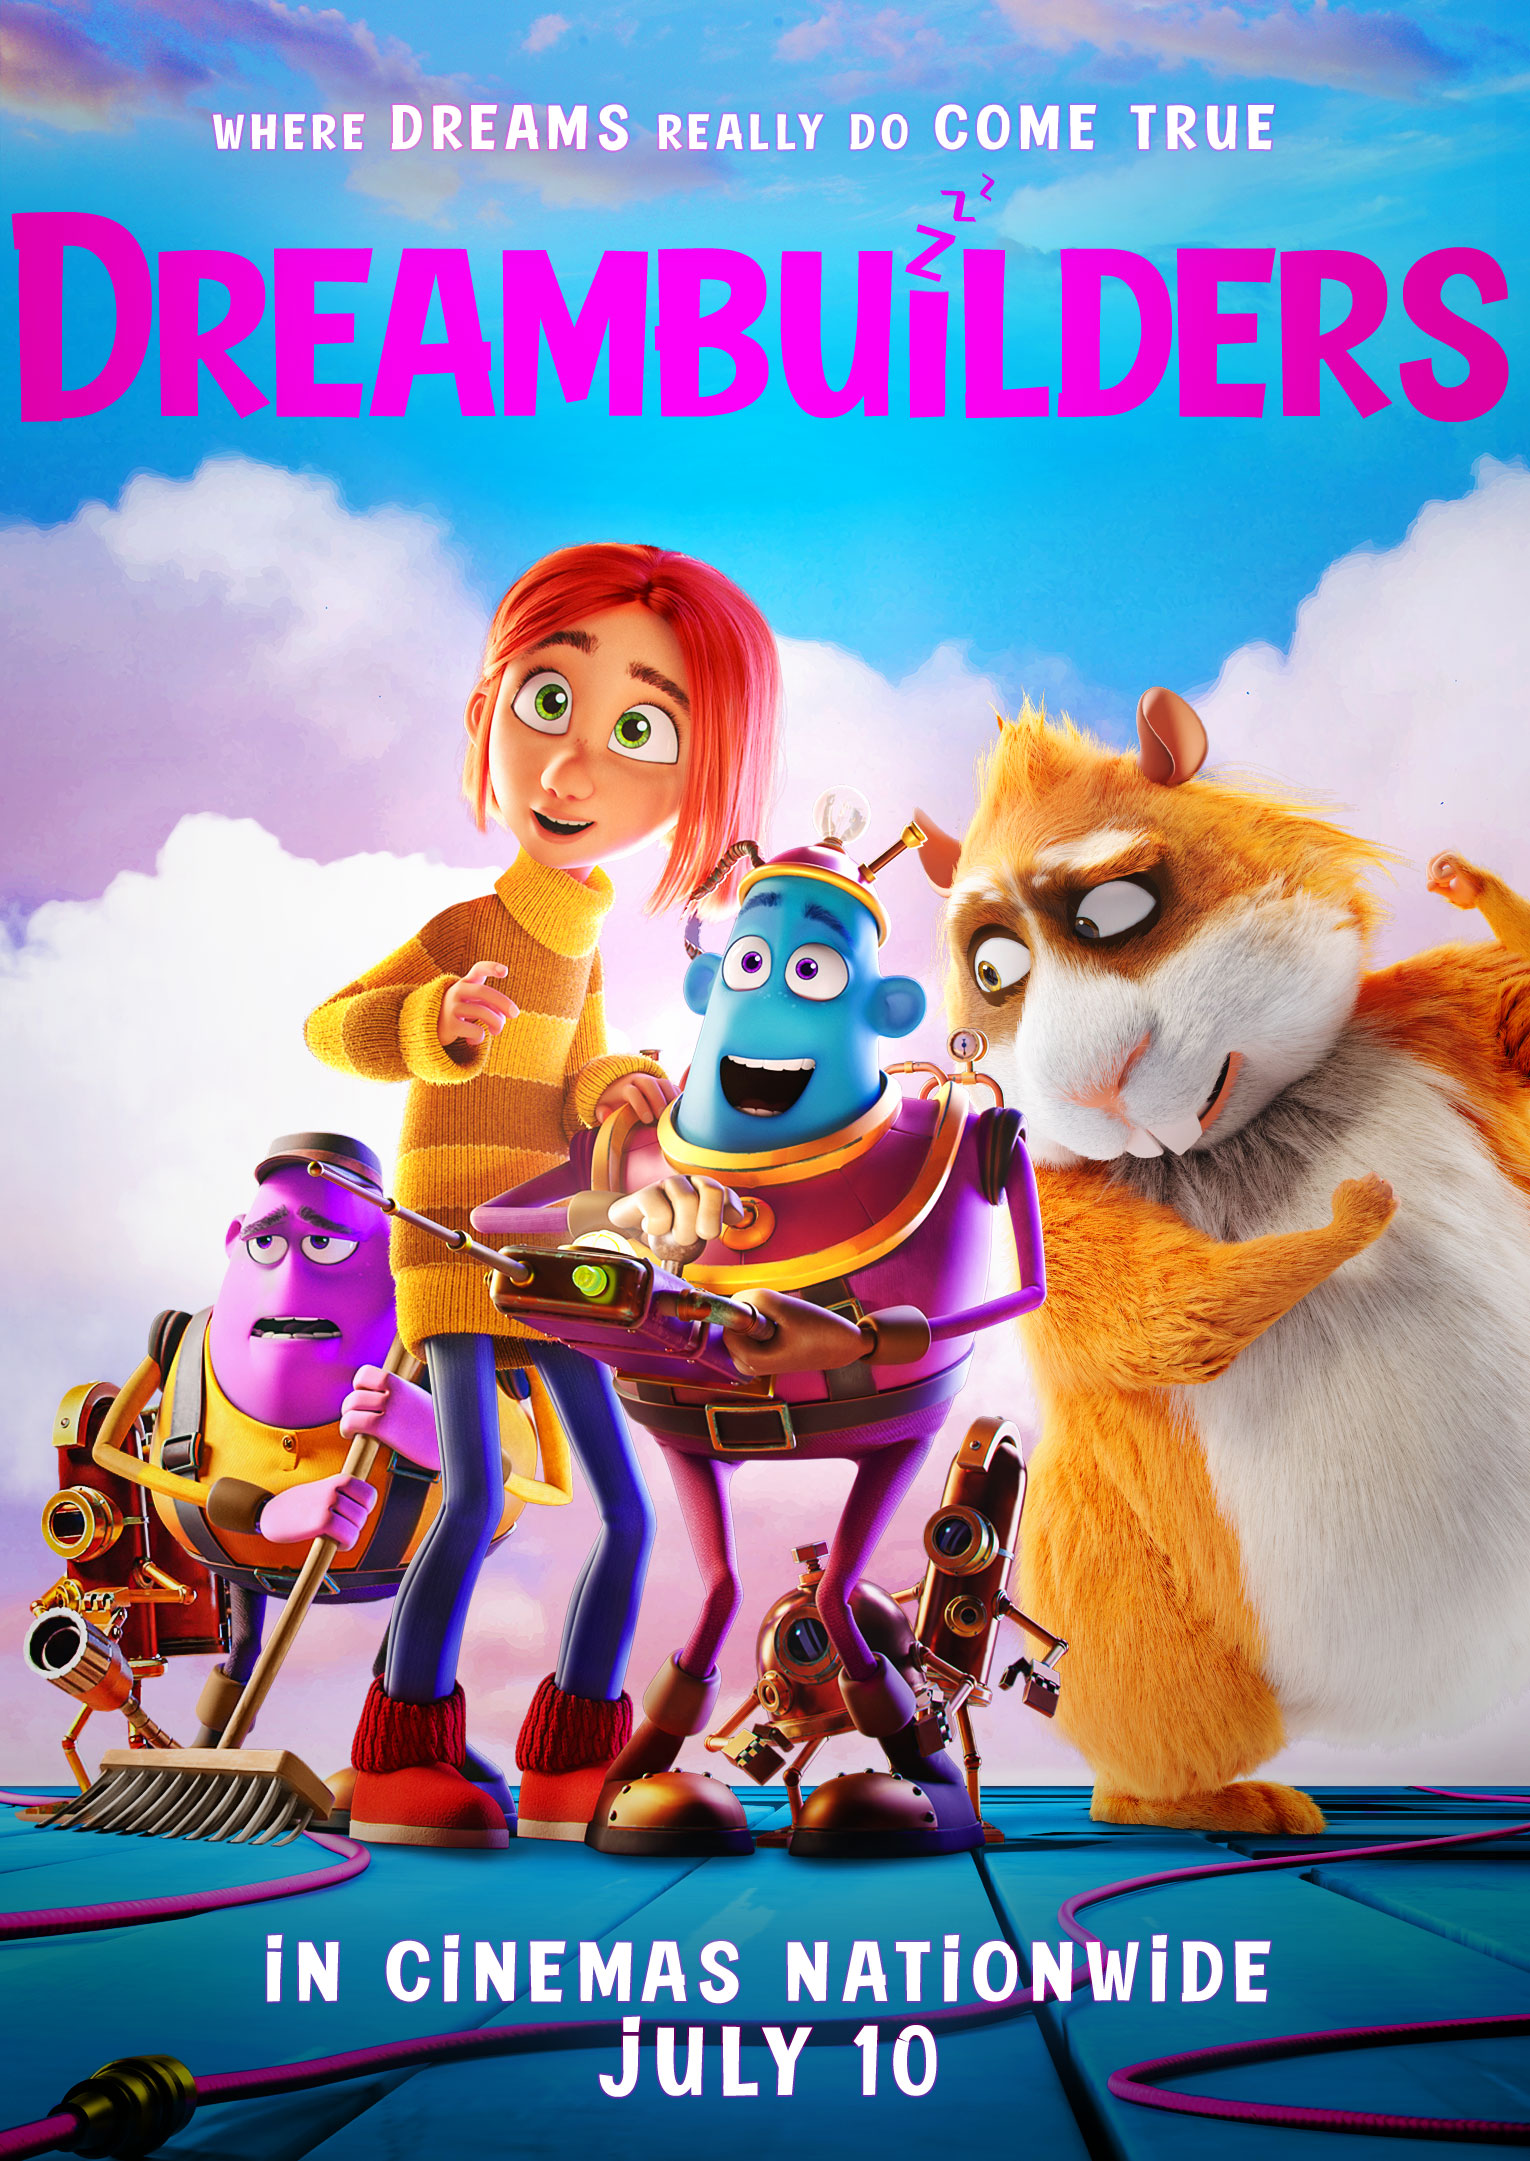 Dreambuilders review: Snap back to reality